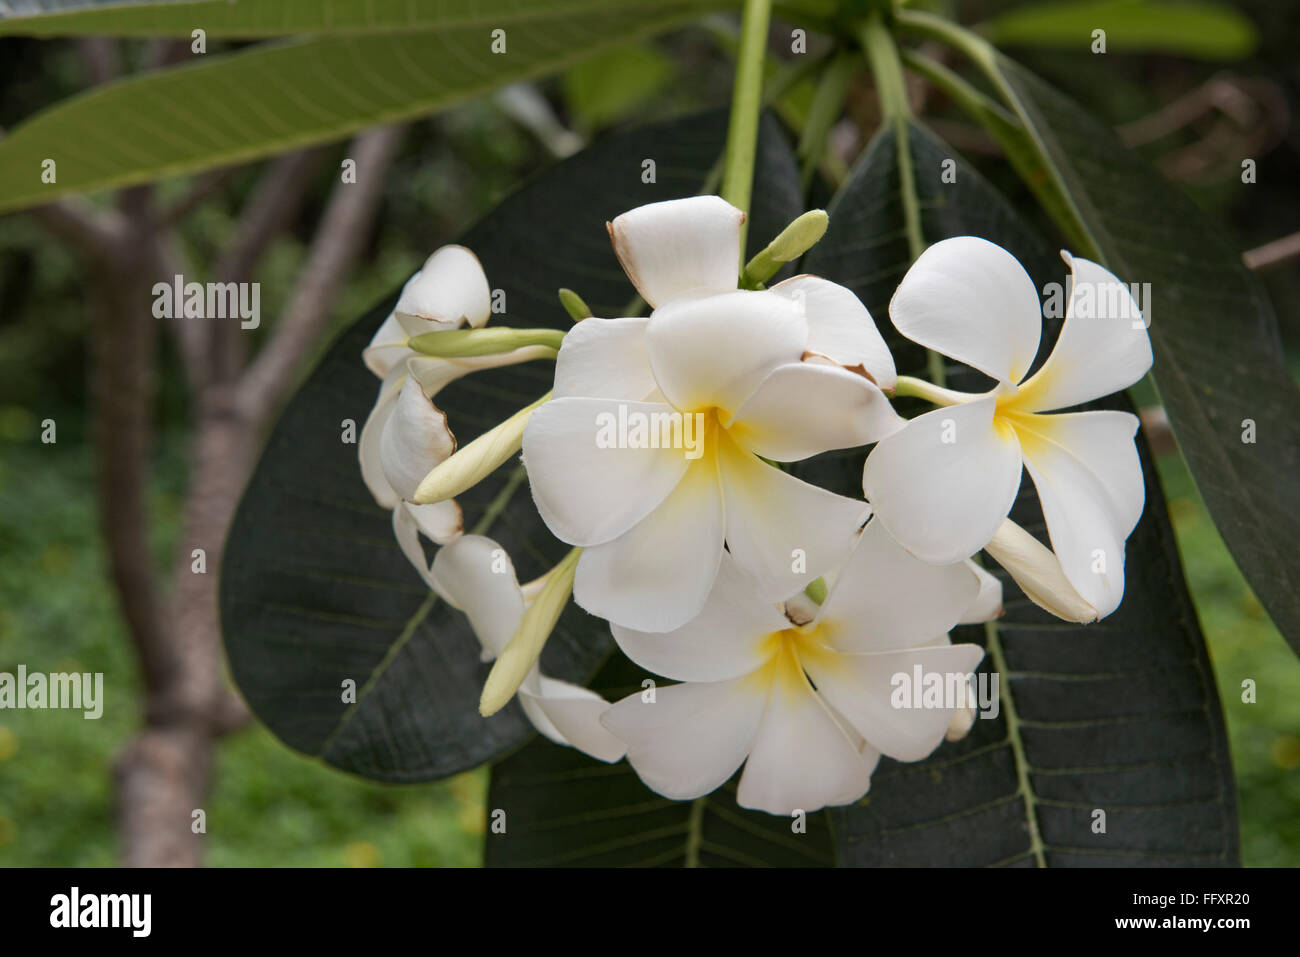 White flowers with yellow centers stock photos white flowers with white flowers on a frangipani tree plumeria sp an ornamental tropical plant mightylinksfo